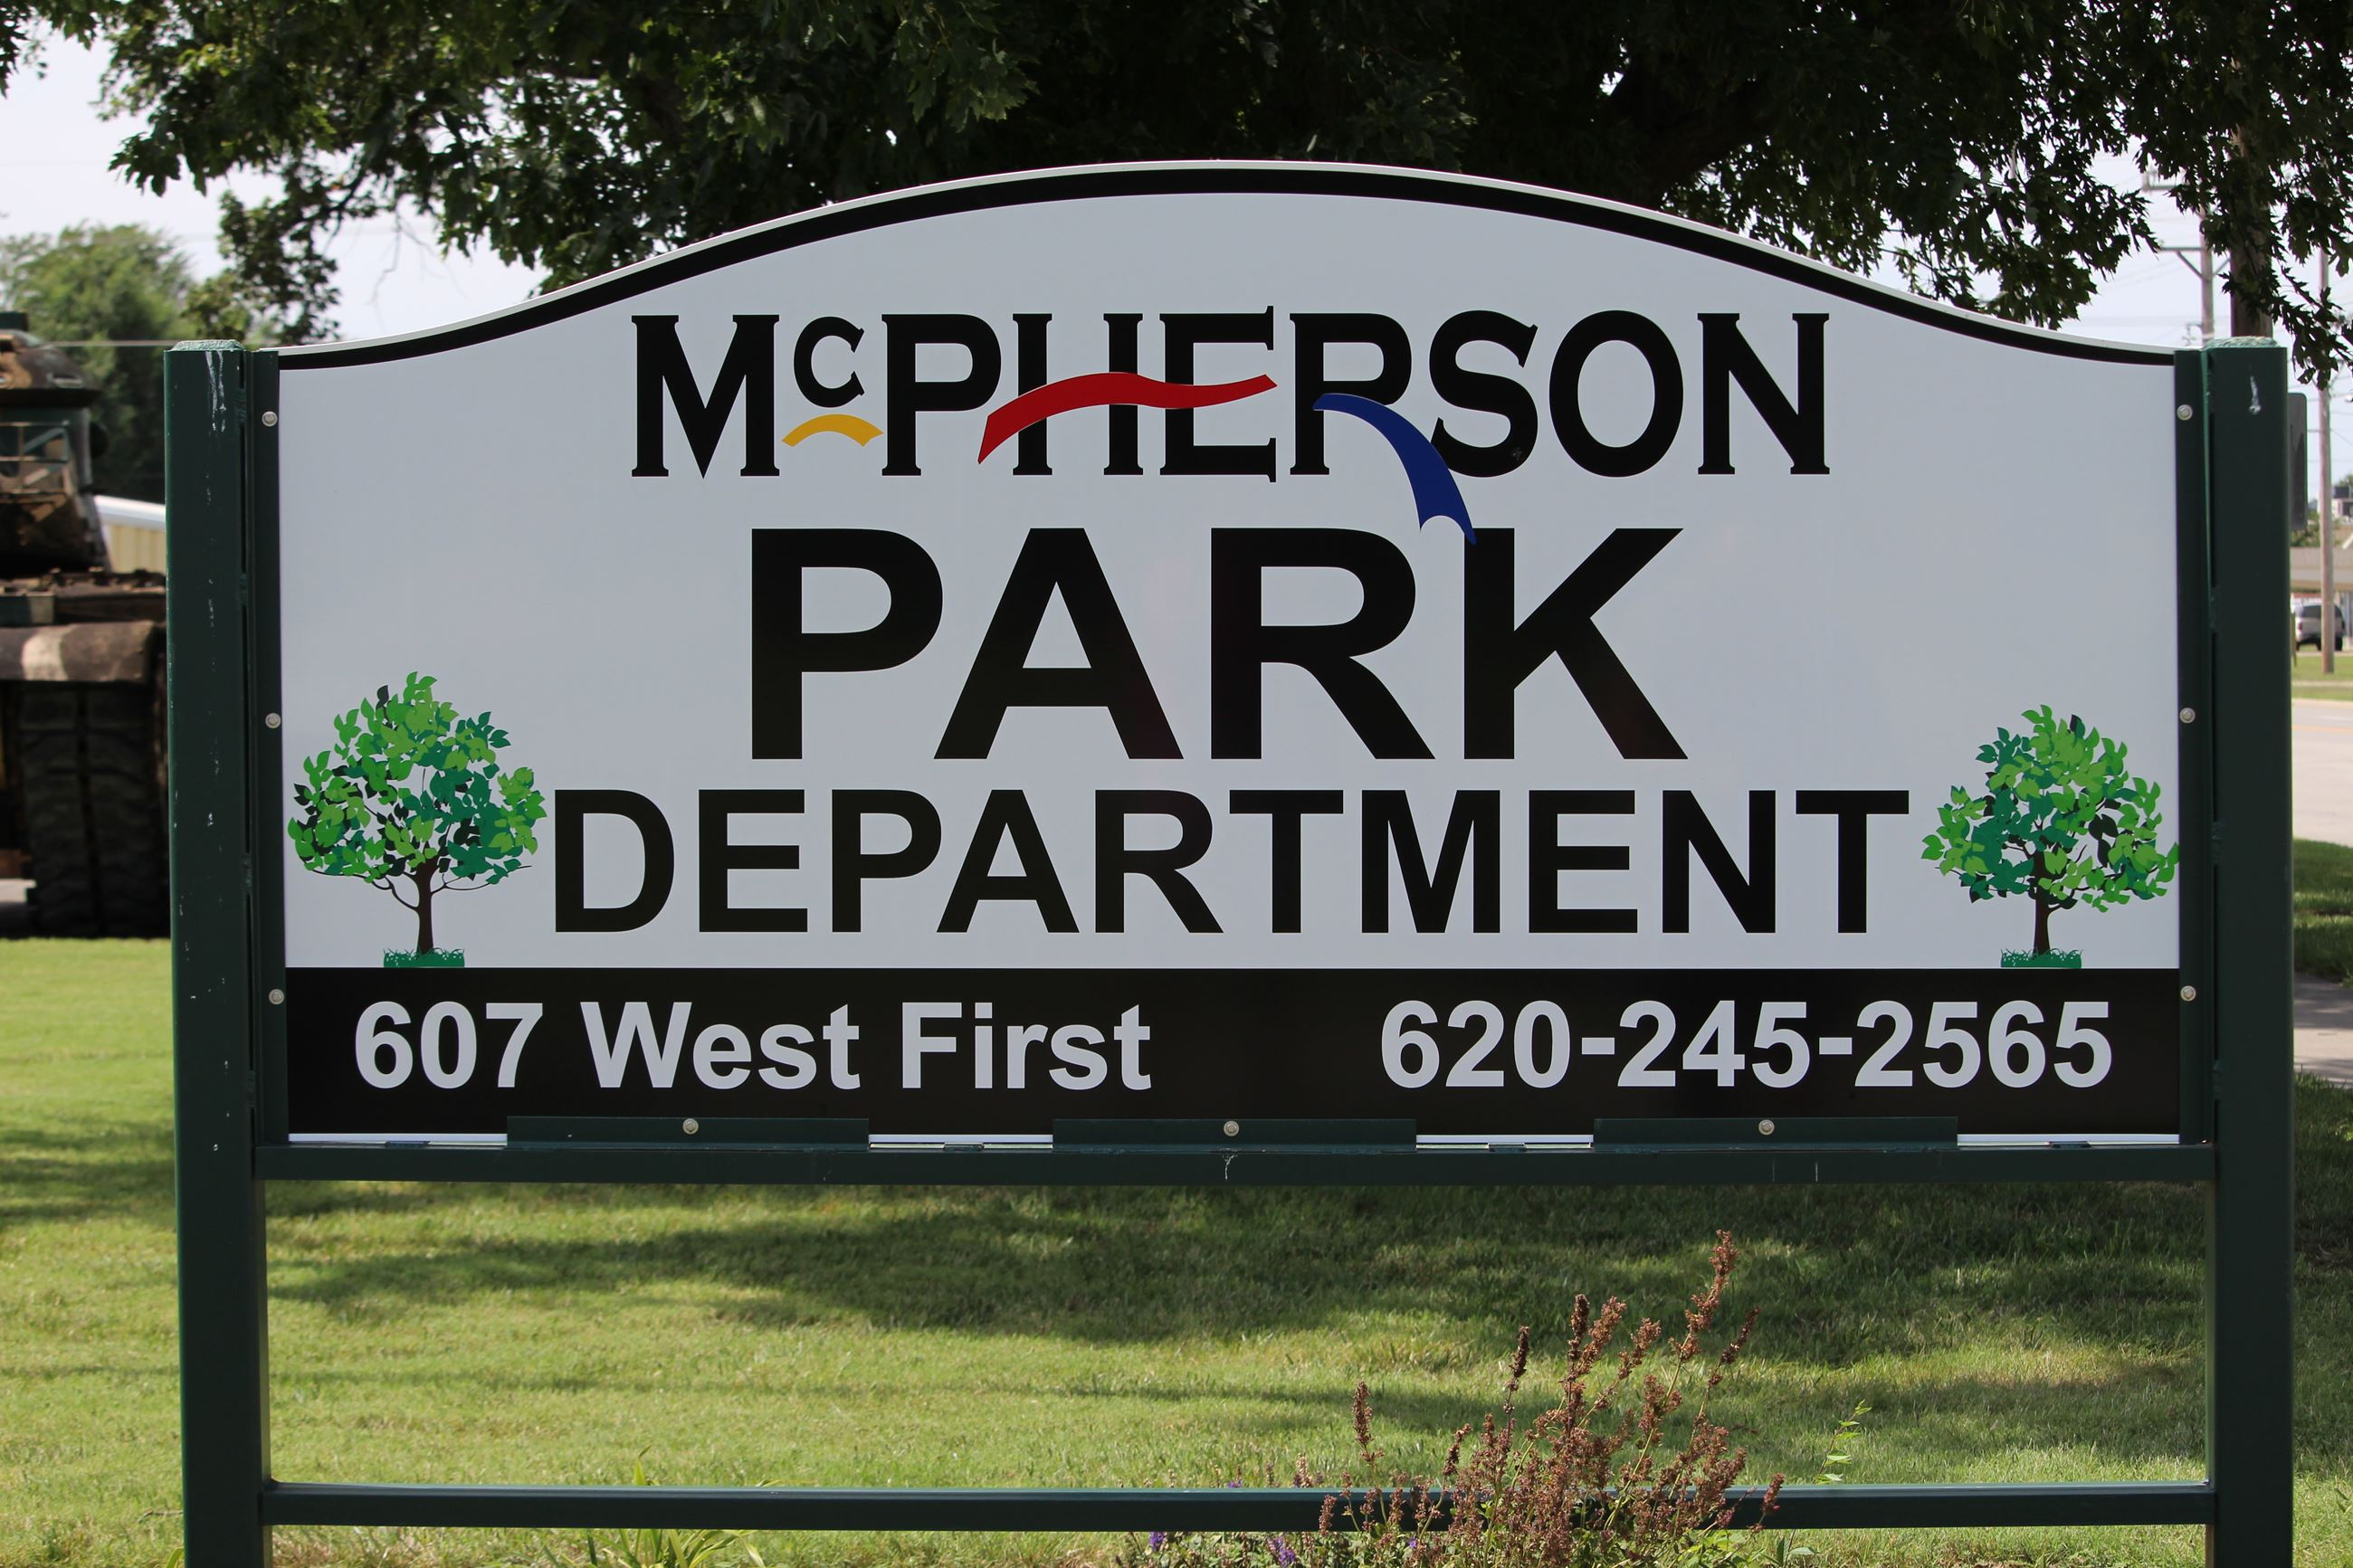 An outdoor sign identifying the McPherson Park Department